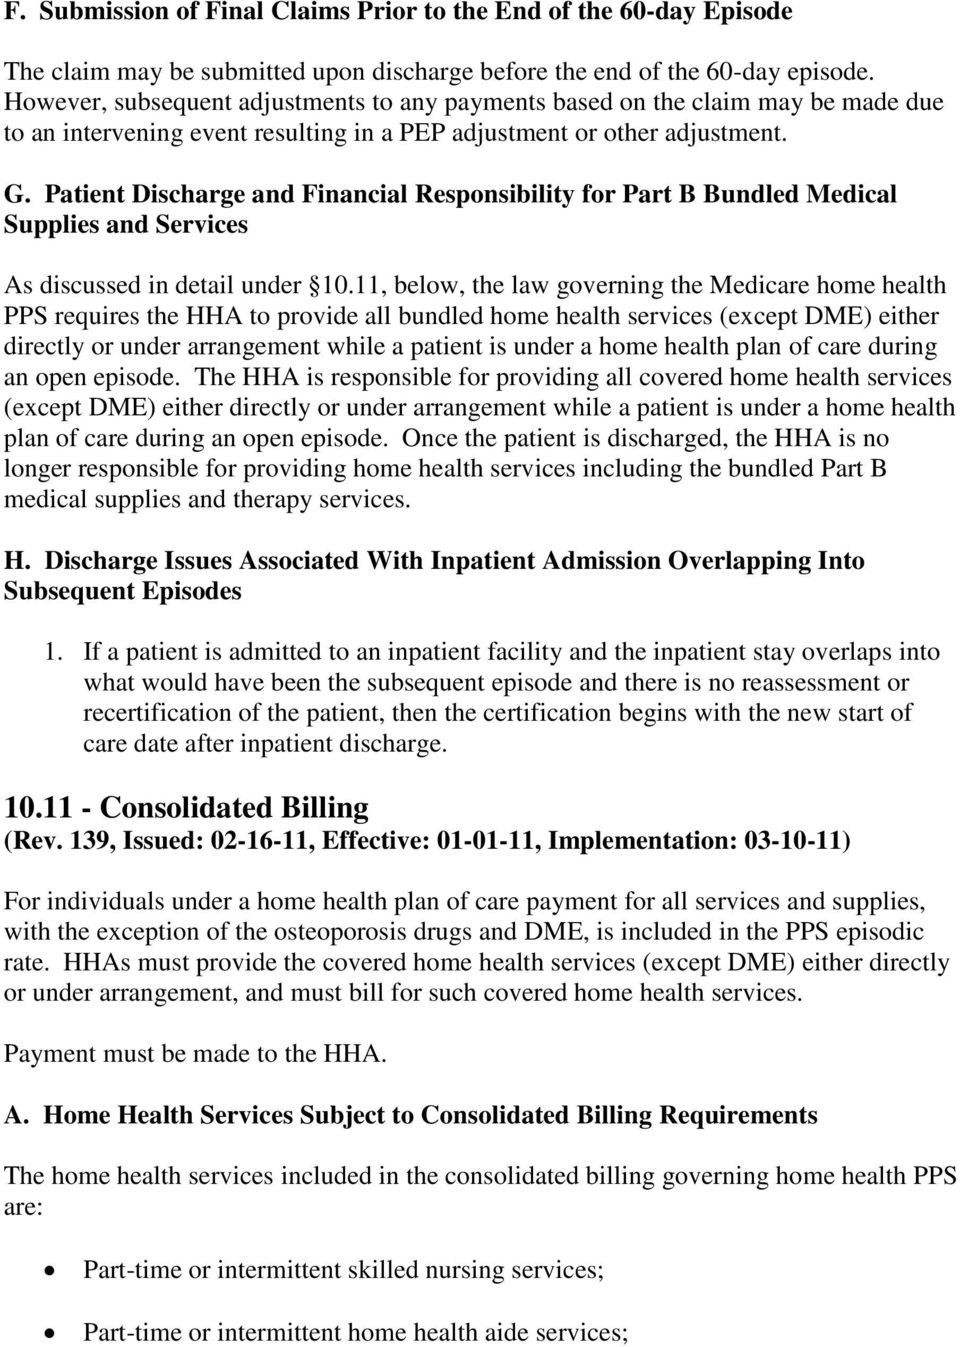 Patient Discharge and Financial Responsibility for Part B Bundled Medical Supplies and Services As discussed in detail under 10.